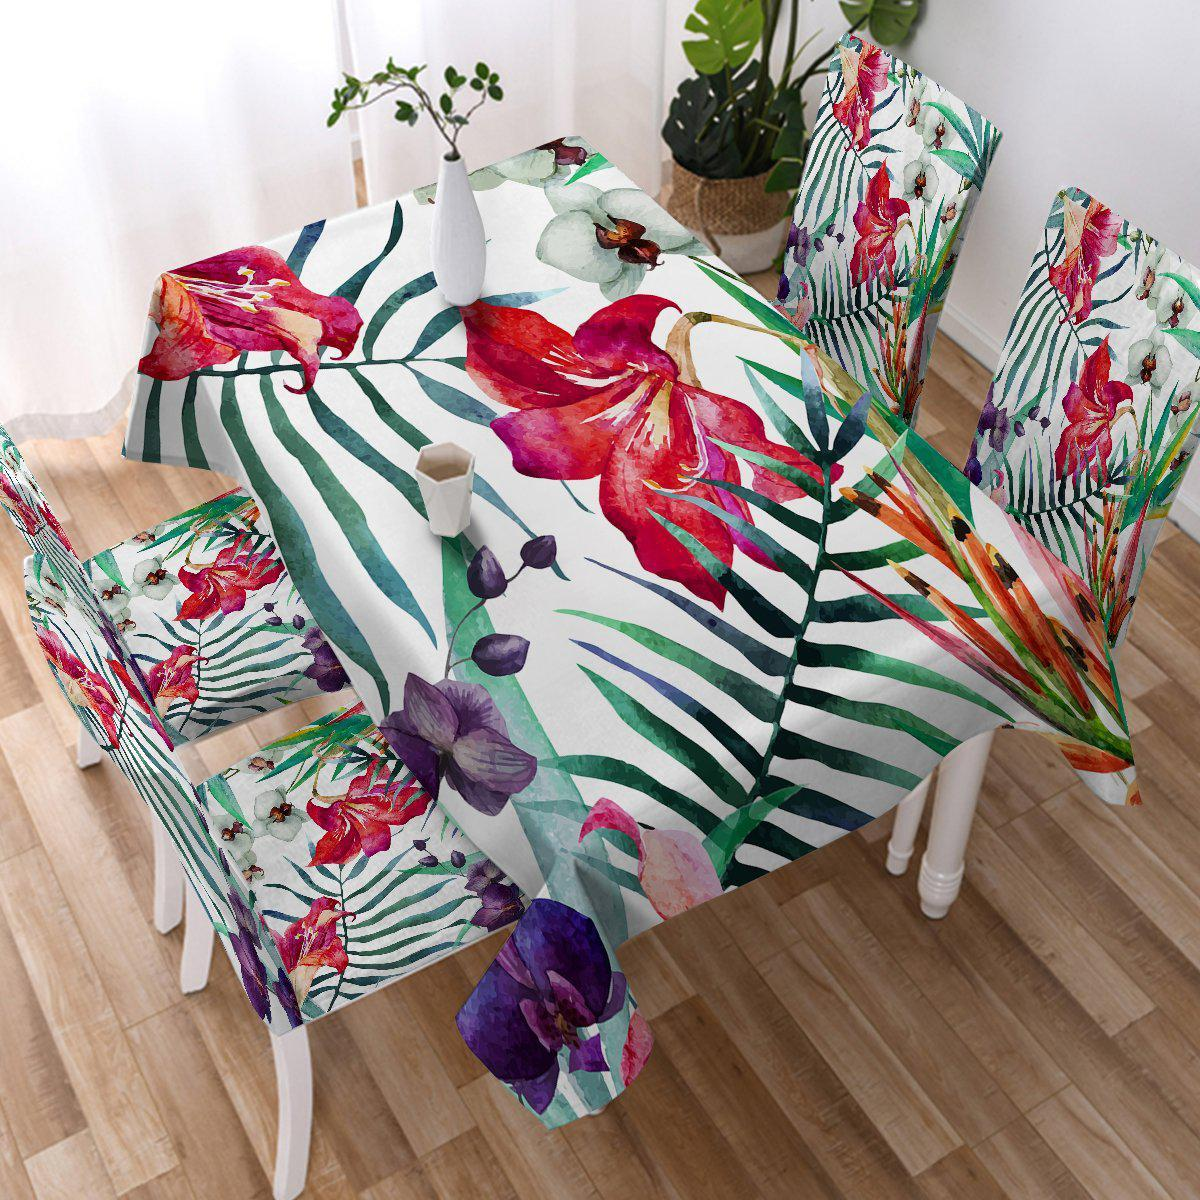 Tropical Floral Tablecloth-Coastal Passion